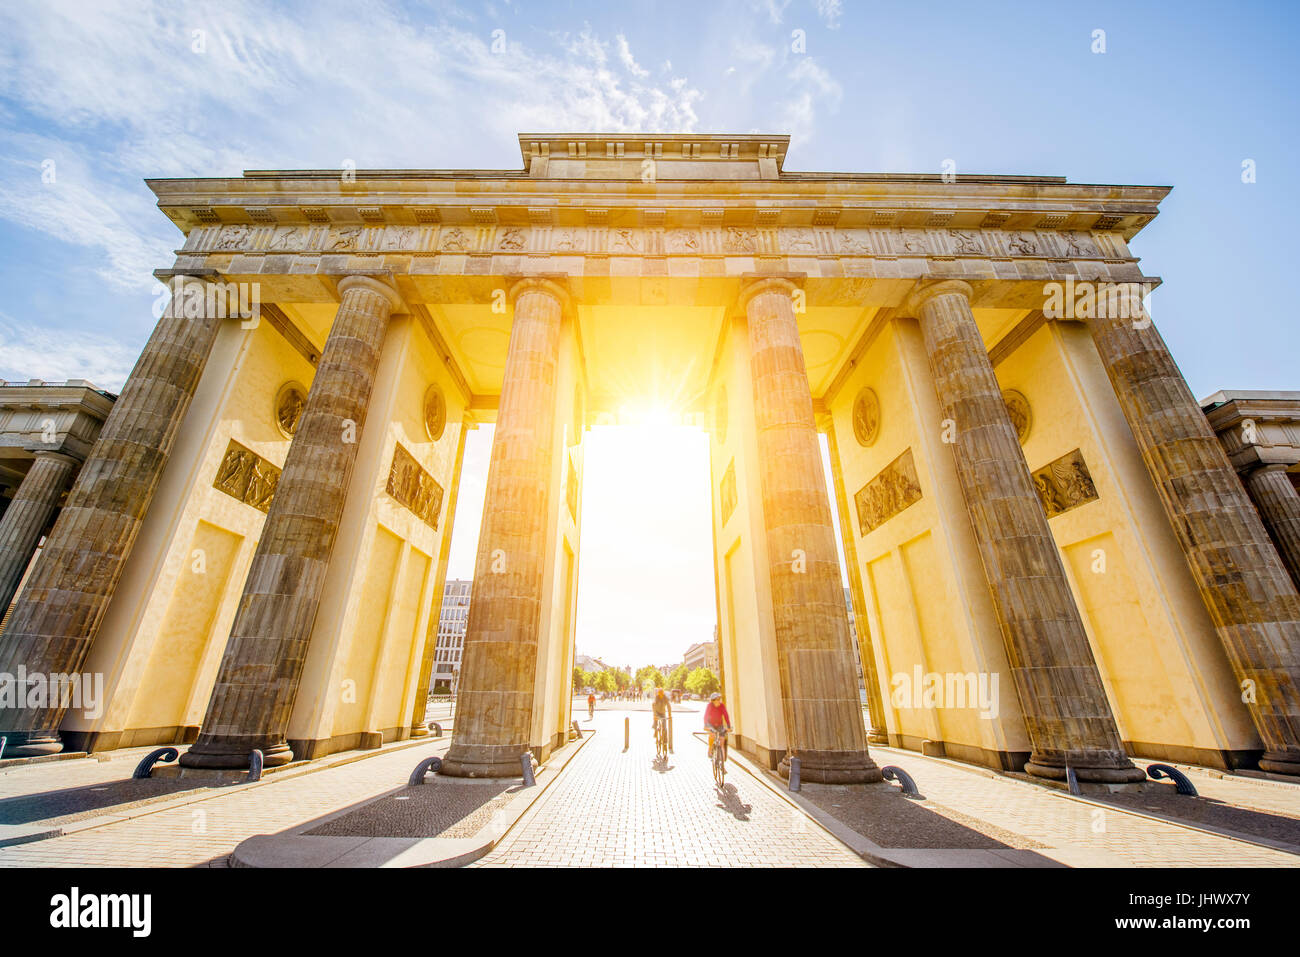 Brandenburg gates - Stock Image